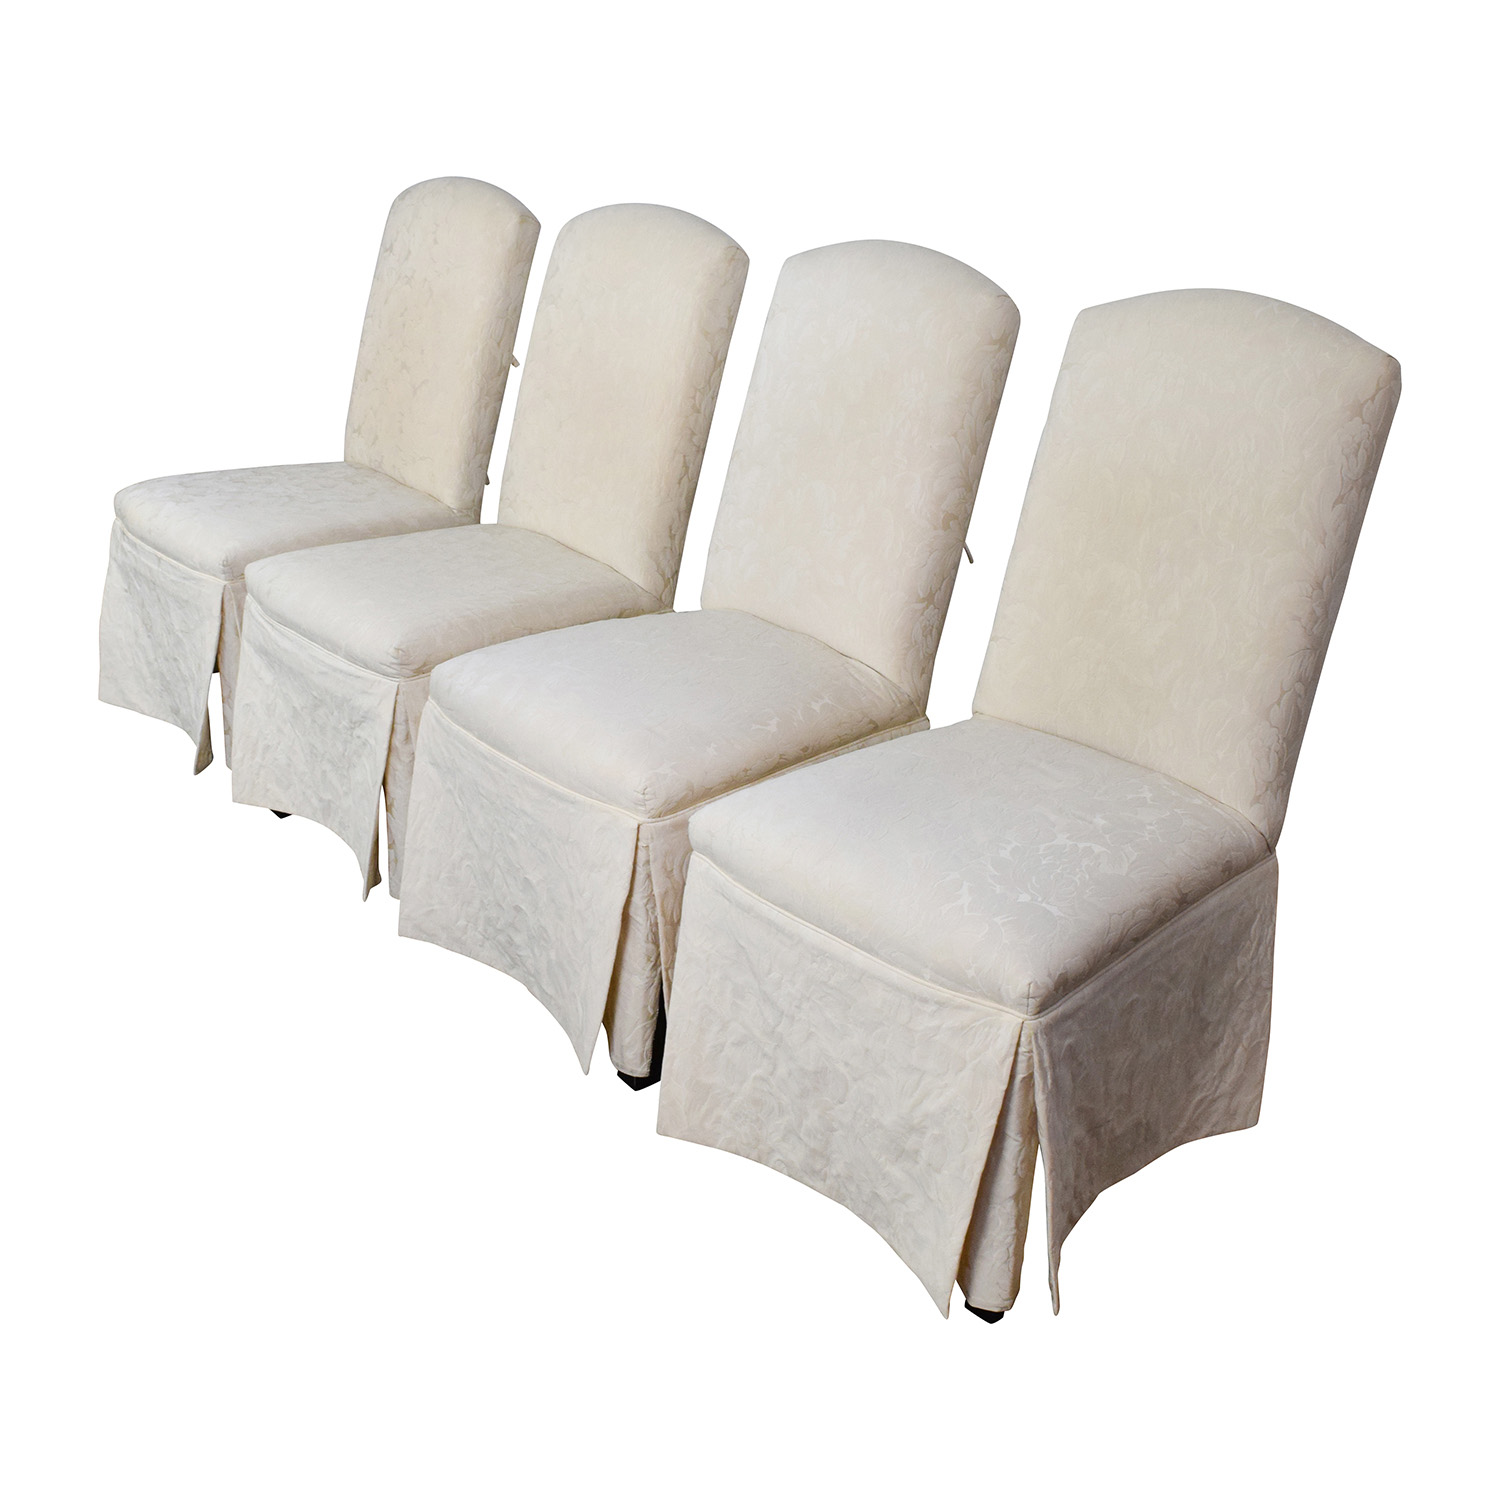 90 off thomasville thomasville ivory upholstered dining for Dining chairs with upholstered seats